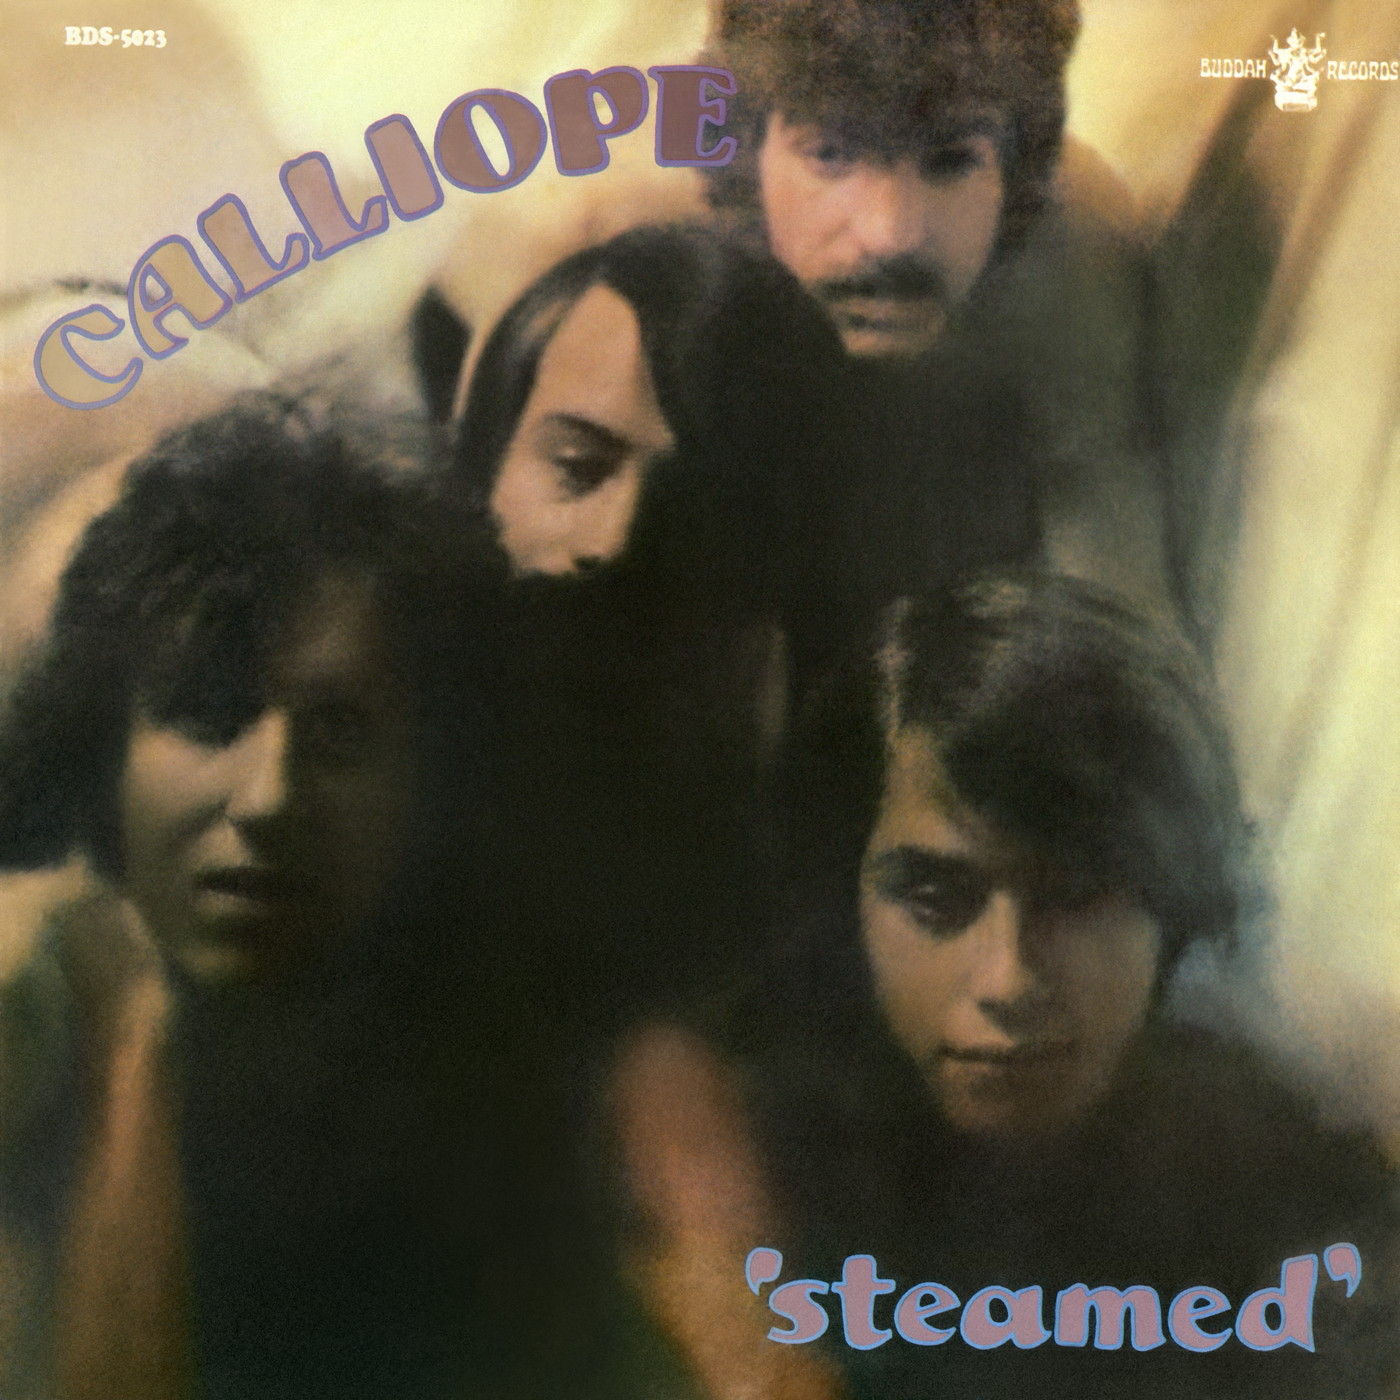 Steamed - The Calliope